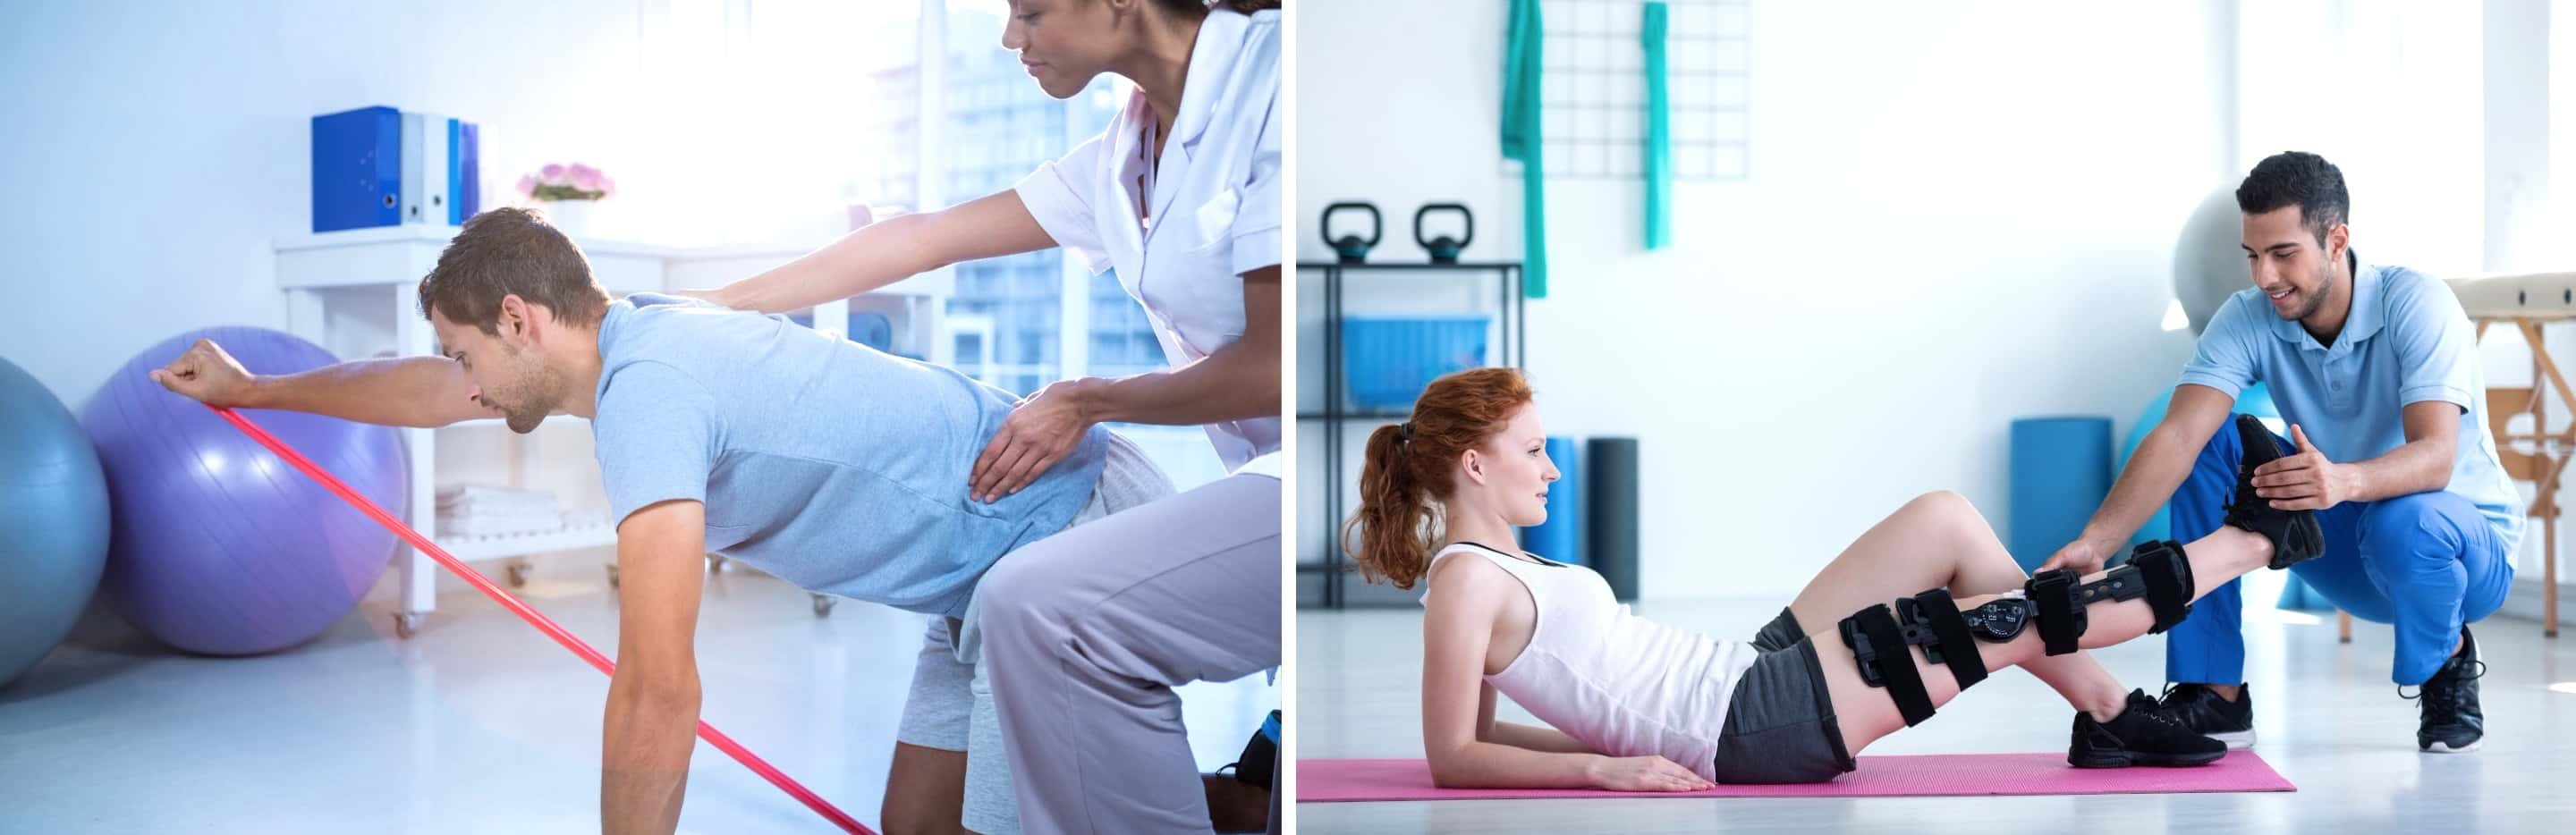 Health Quest offers state-of-the-art chiropractic and PT care to the Baltimore area.